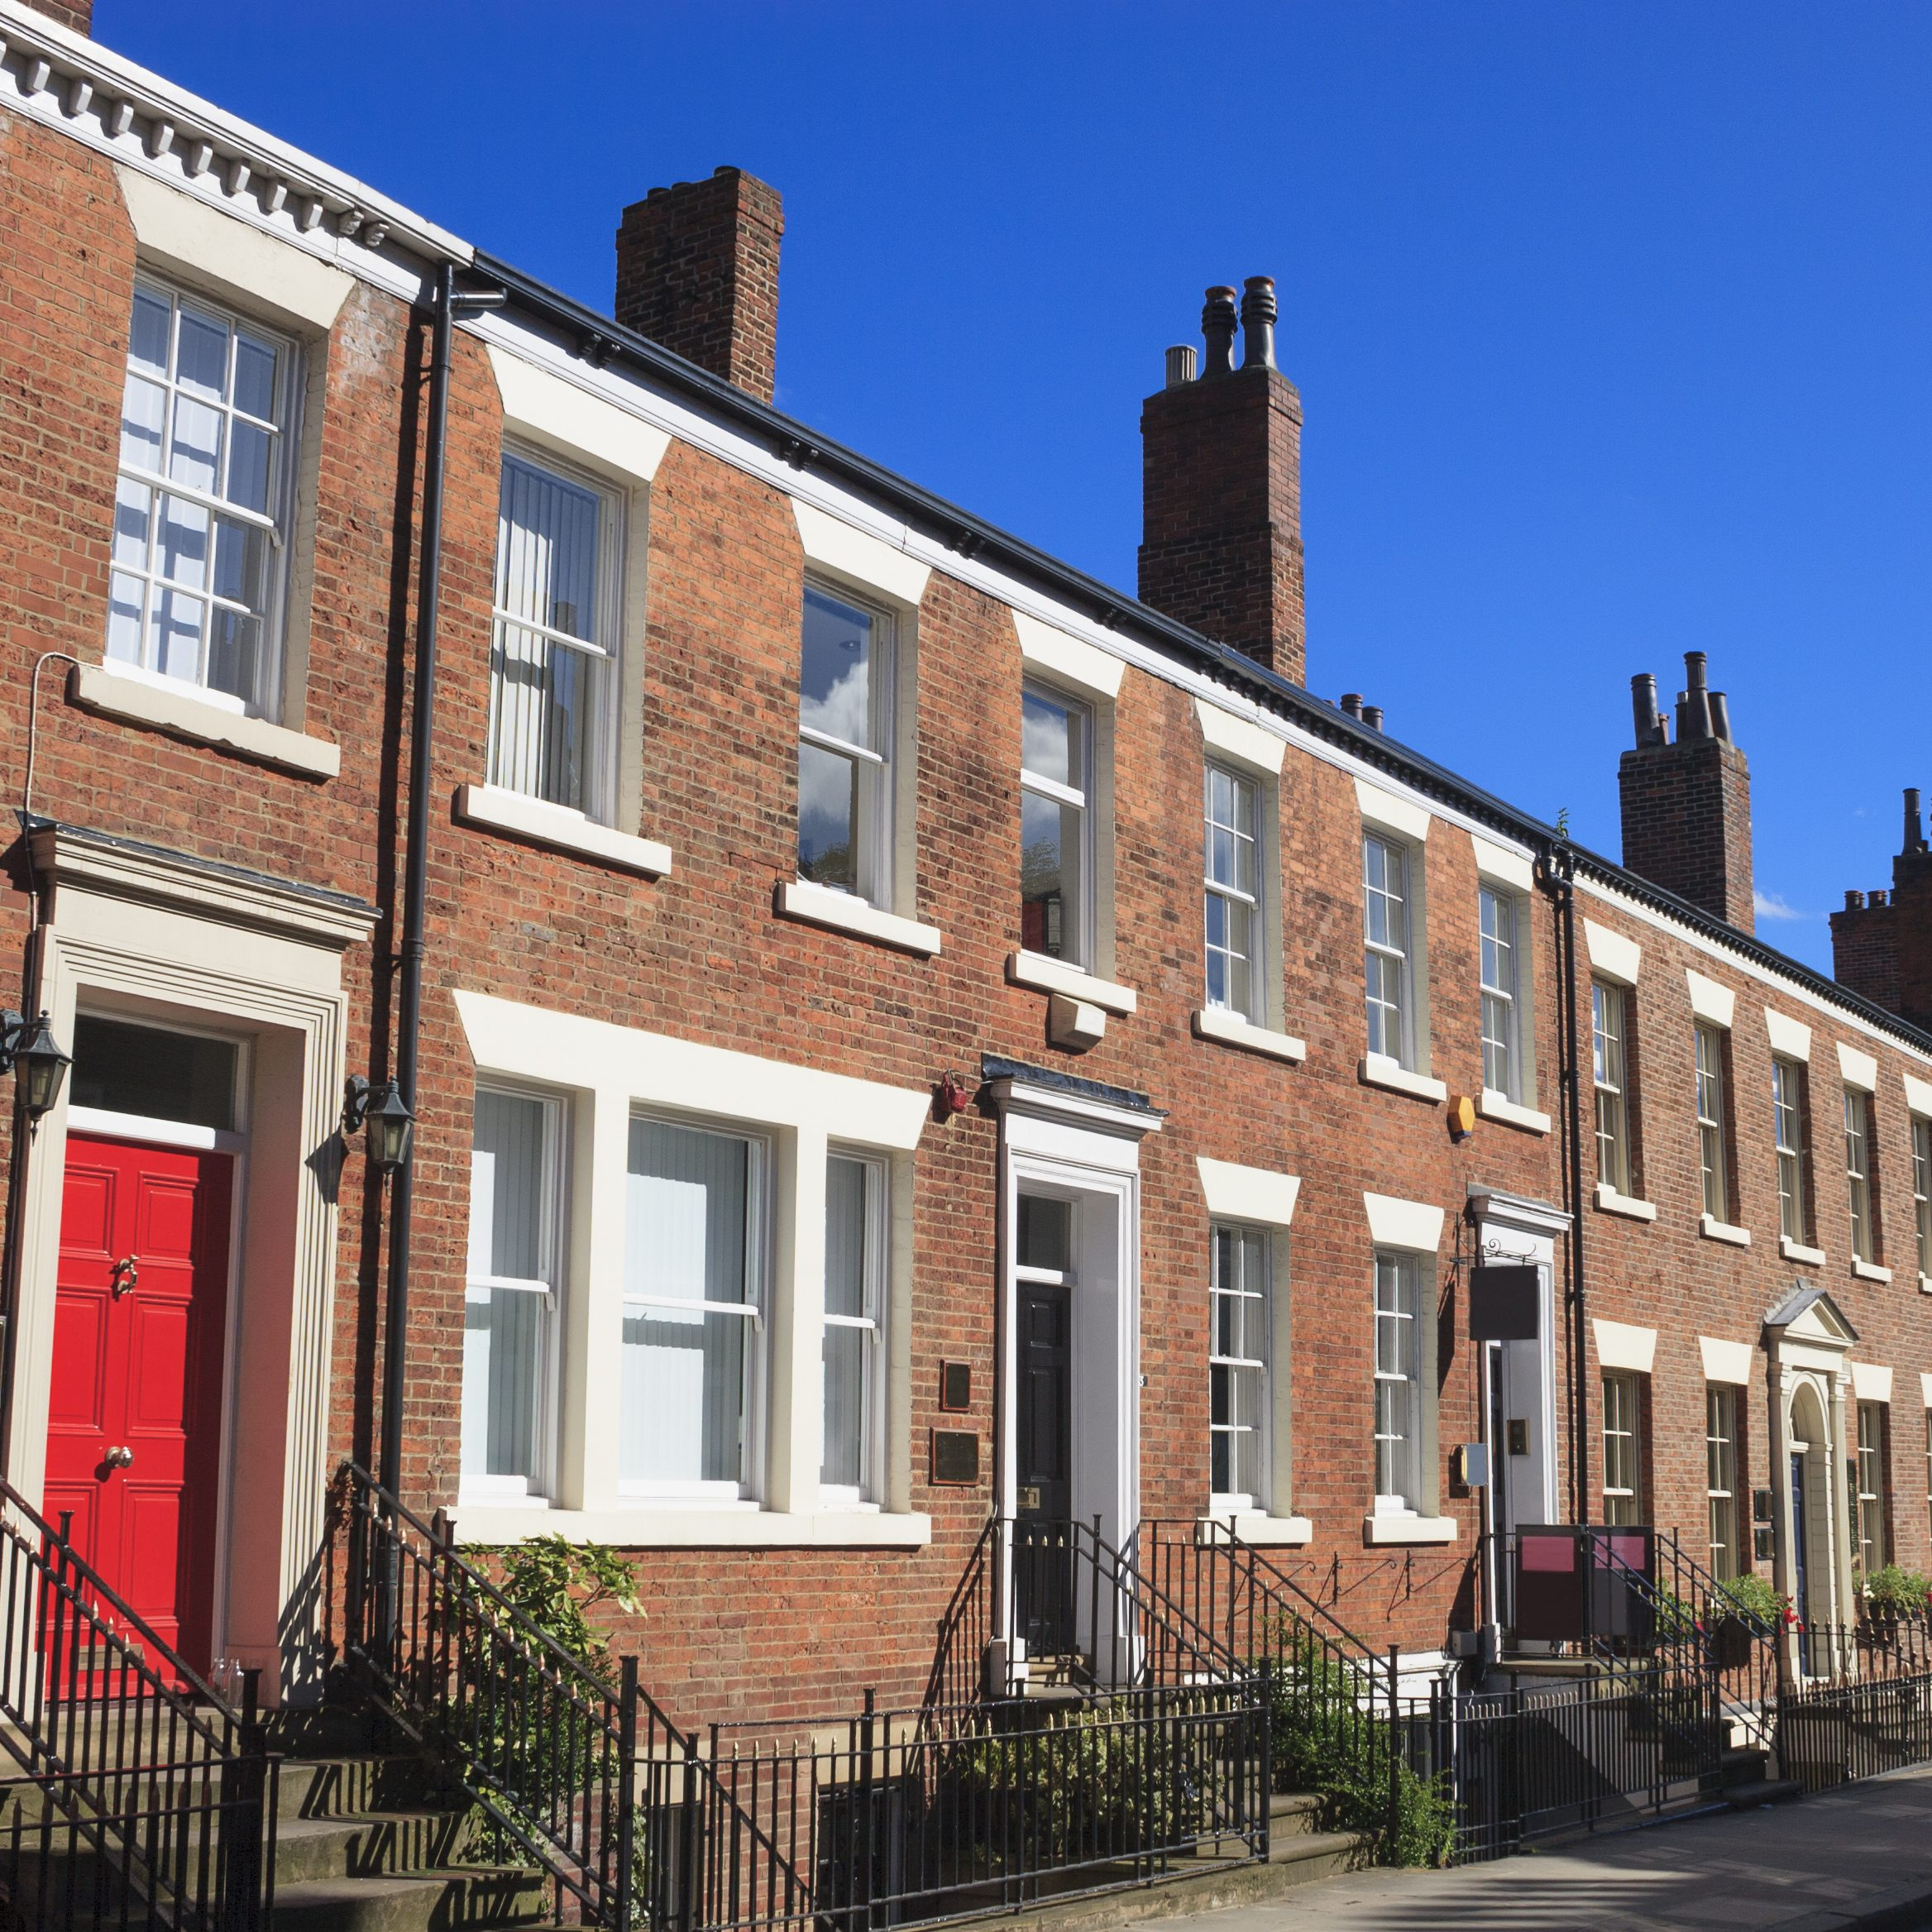 Row of Georgian terrace houses.